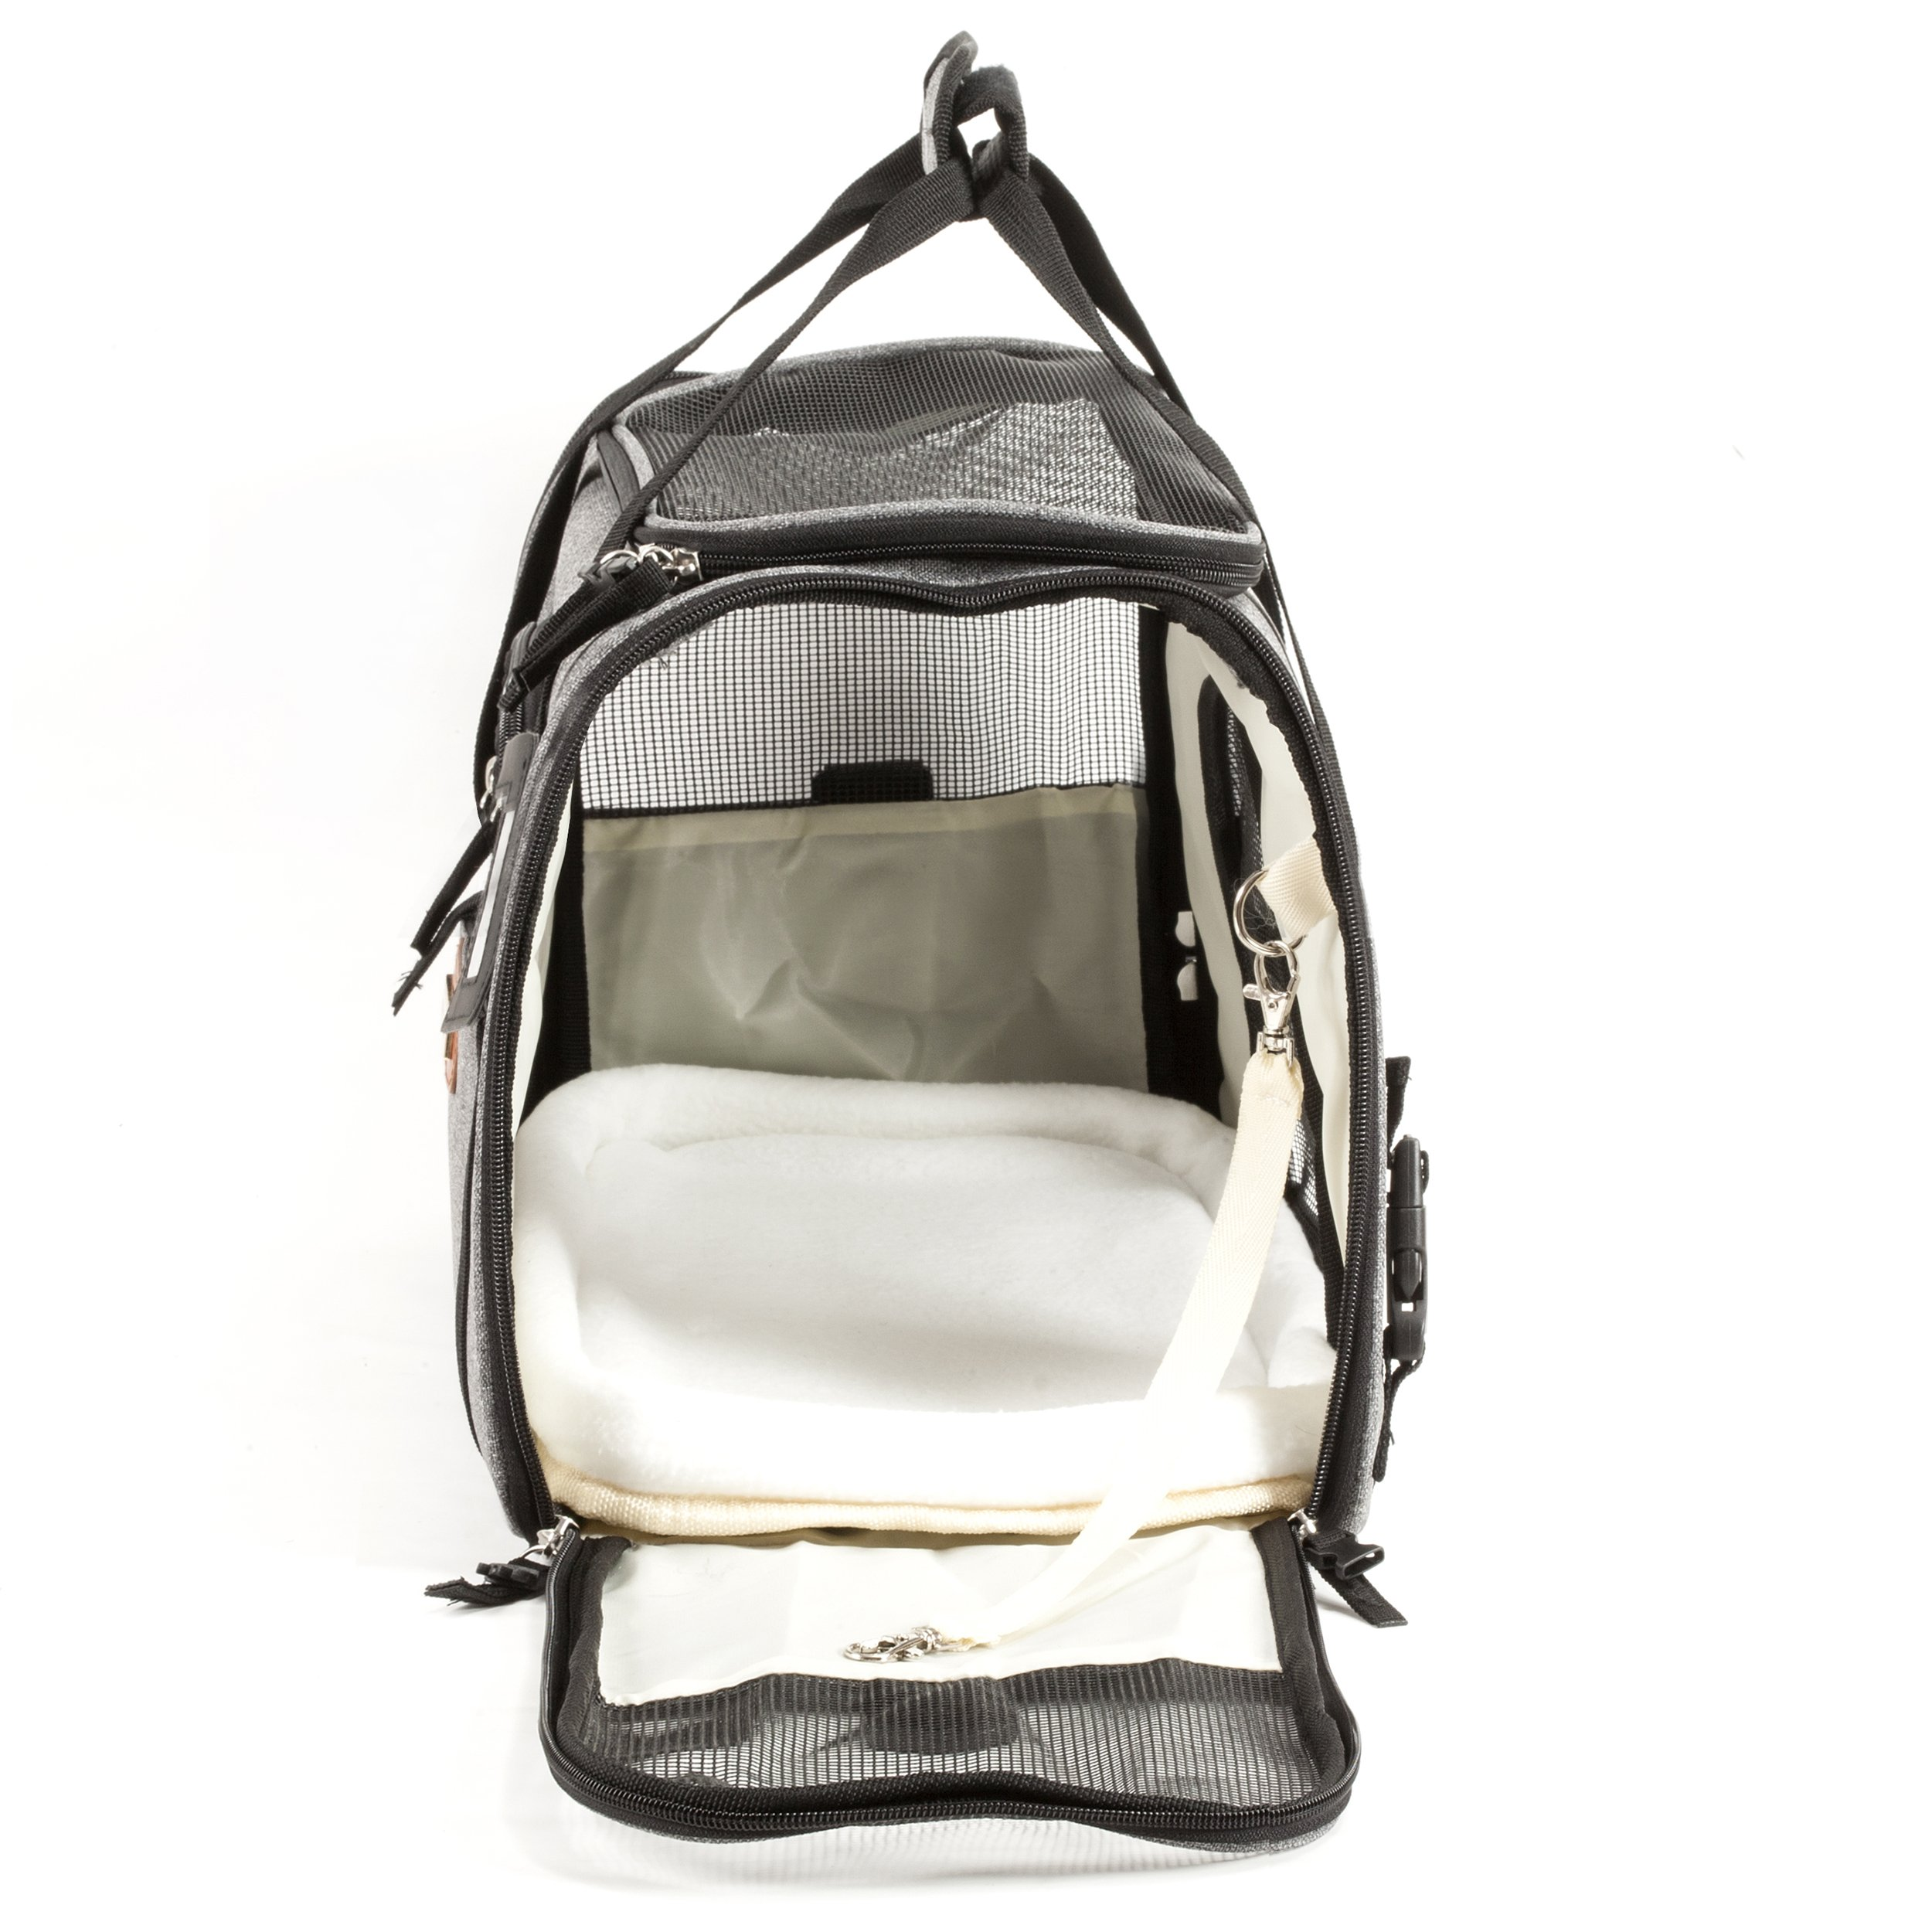 Pawfect Pets Pet Travel Carrier, Soft-Sided with Two Pet Mats for Small Dogs and Cats (Grey) by Pawfect Pets (Image #7)